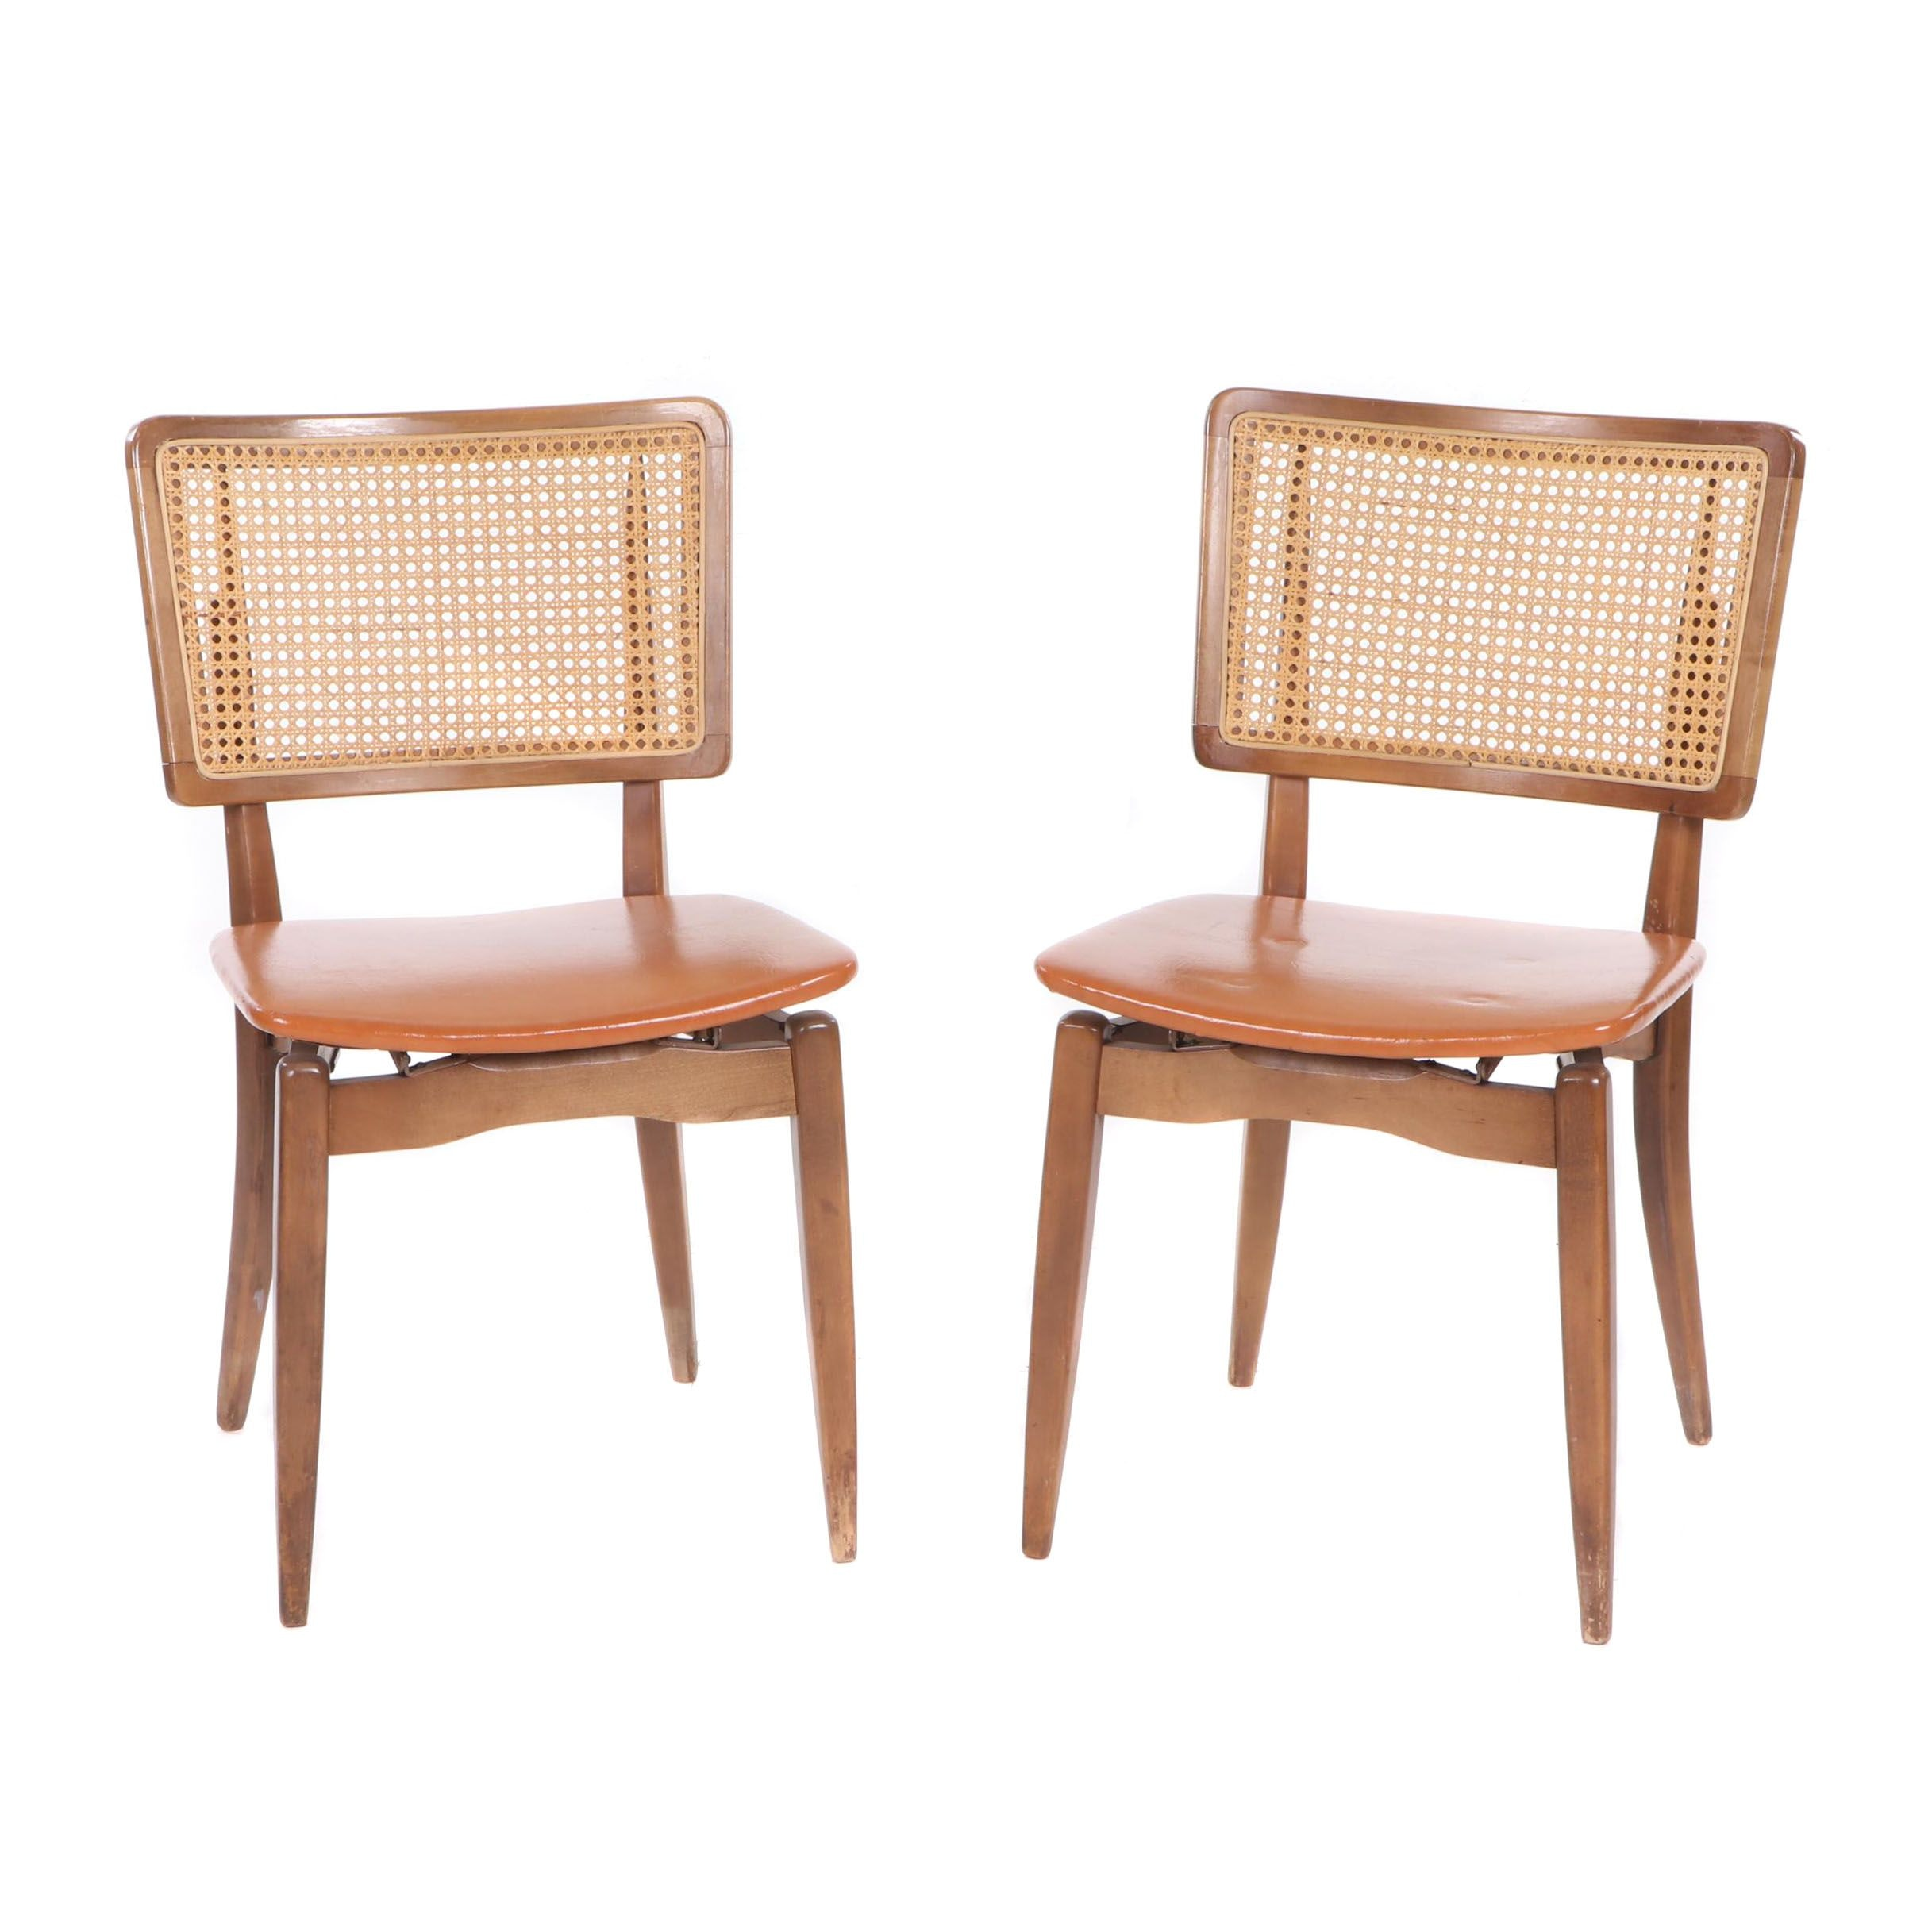 Stakmore Cane-Back Folding chairs, Mid-20th Century